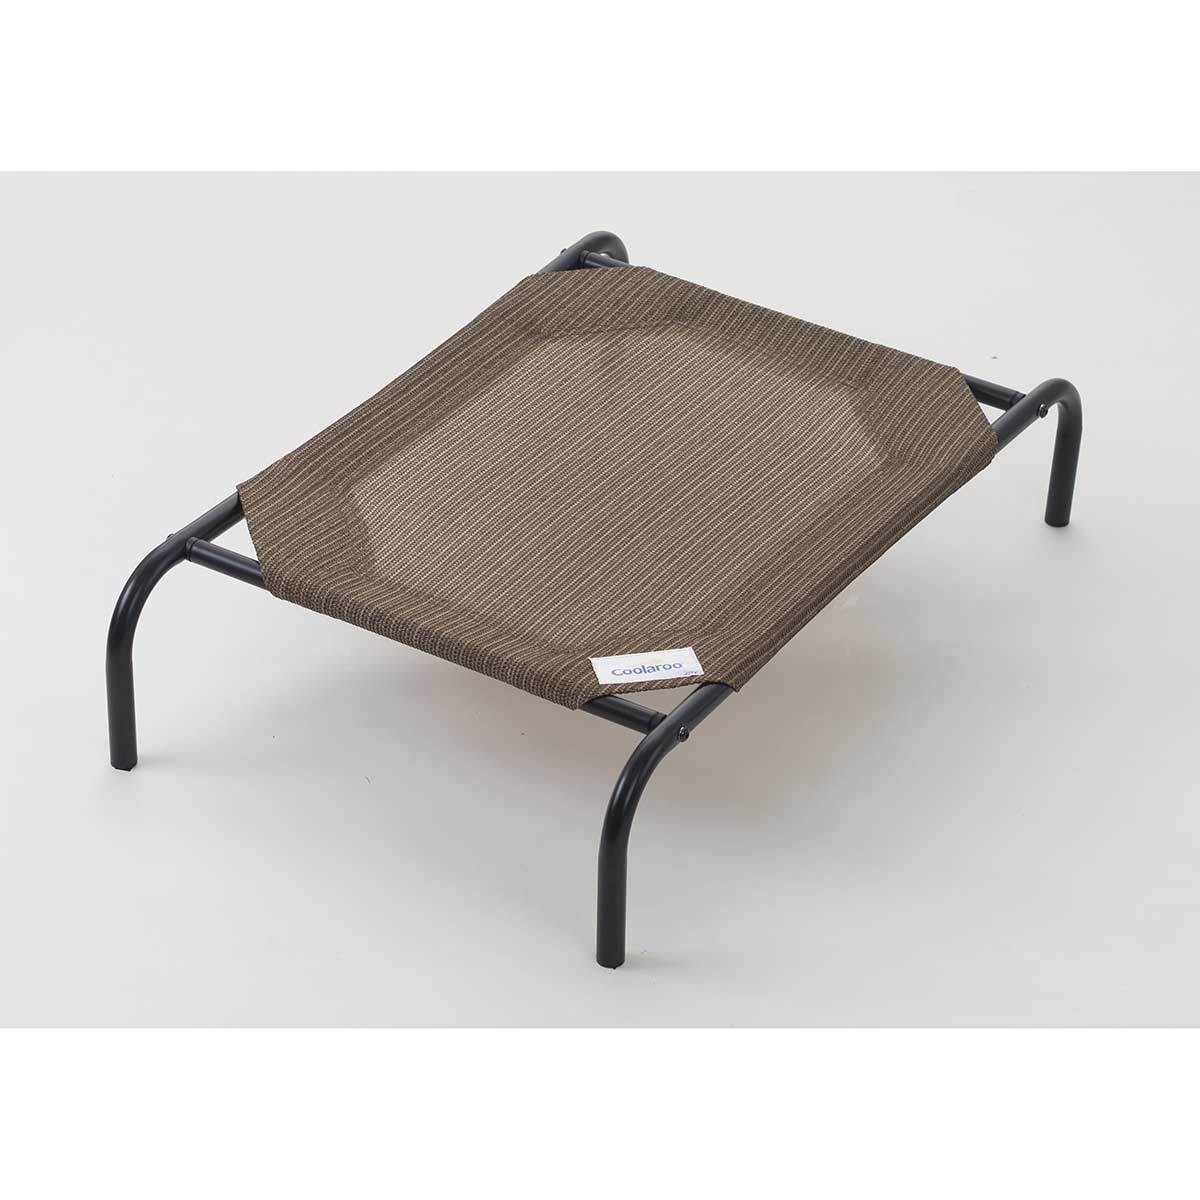 Coolaroo Medium Pet Bed Nutmeg 43.37 inches by 25.63 inches at Ryan's Pet Supplies